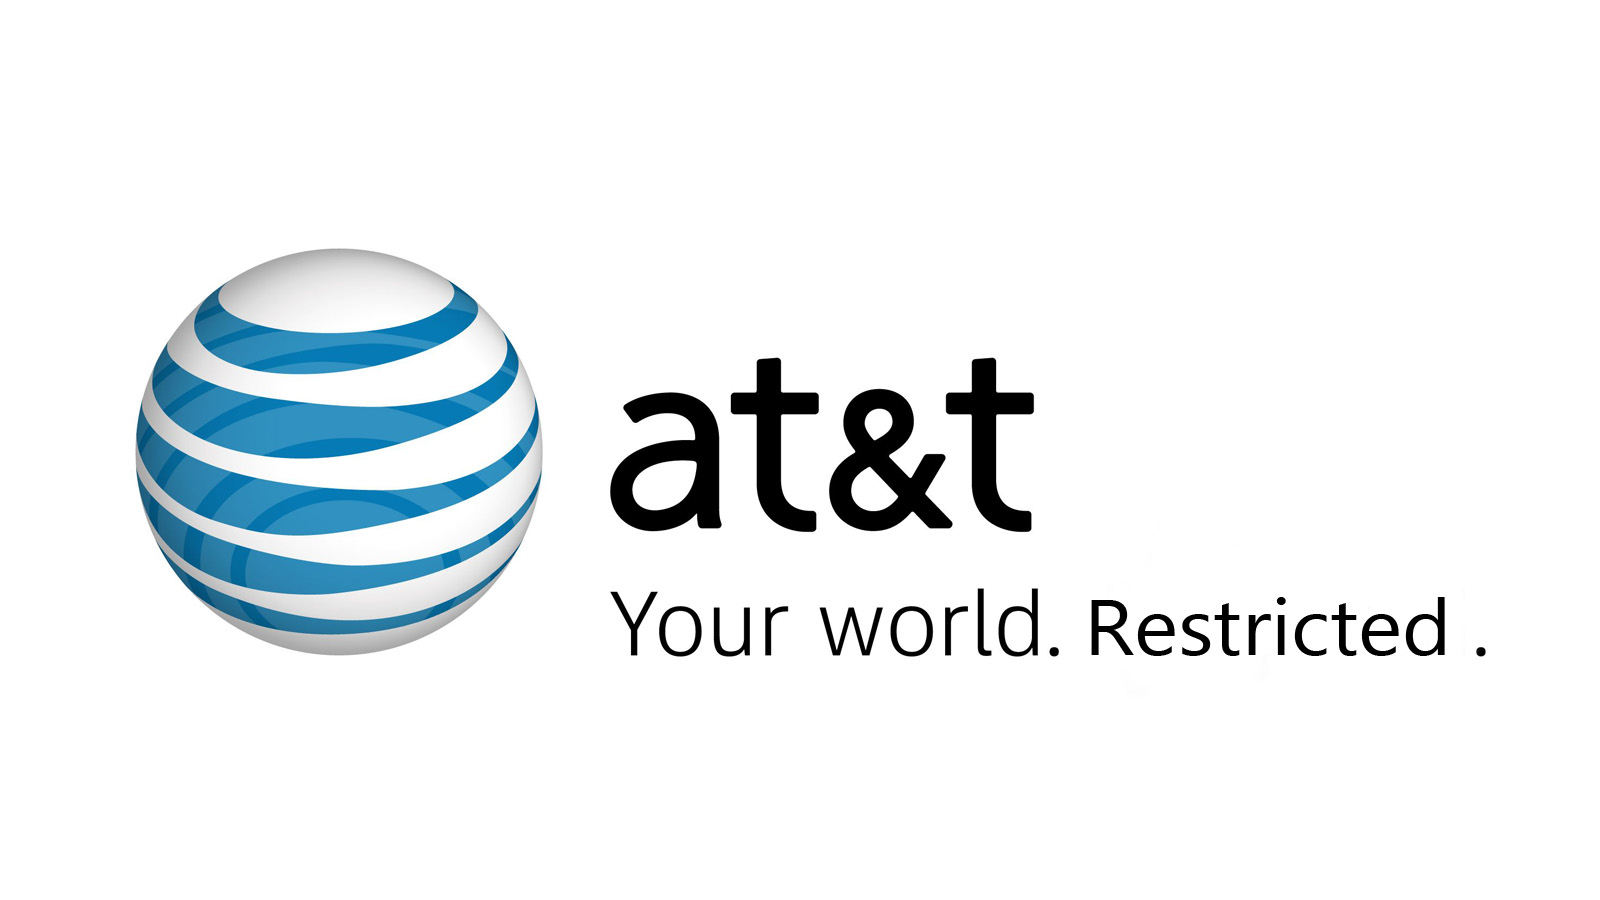 AT&T Inc. (NYSE:T) Approaches Telefonica S.A. (ADR) (NYSE:TEF), Report: Verizon, Frontier Communications, Windstream